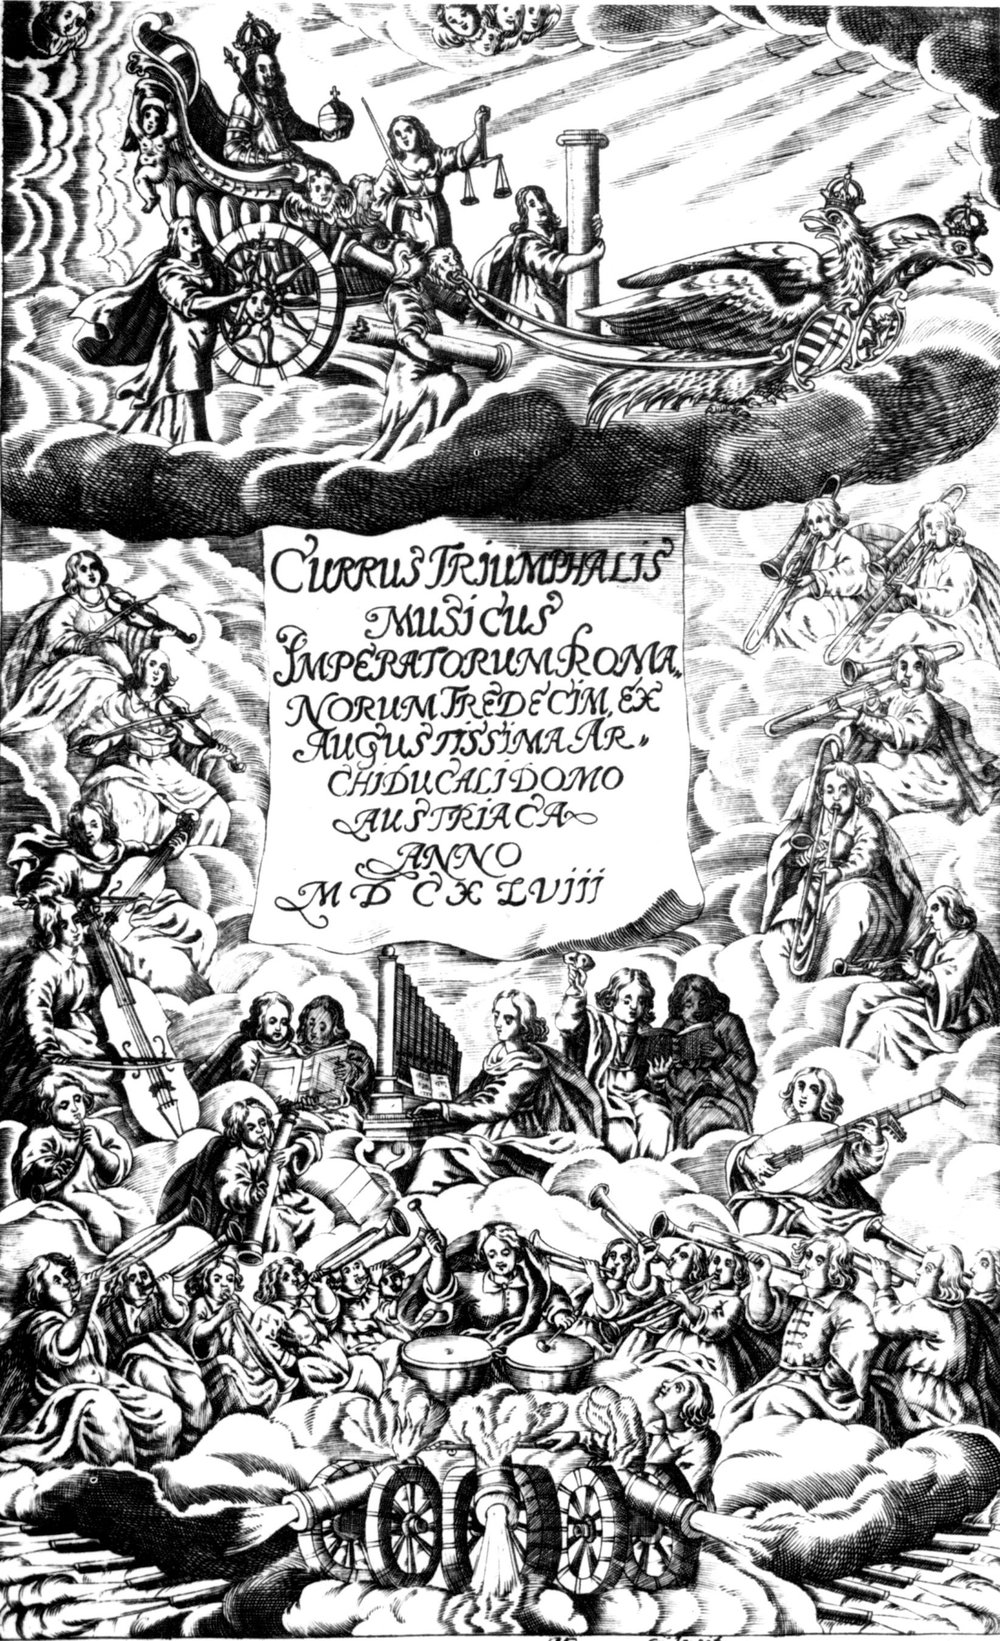 Title page from Currus Triumphalia of Andreas Rauch, 1648. Engraving by Michael Frommer.